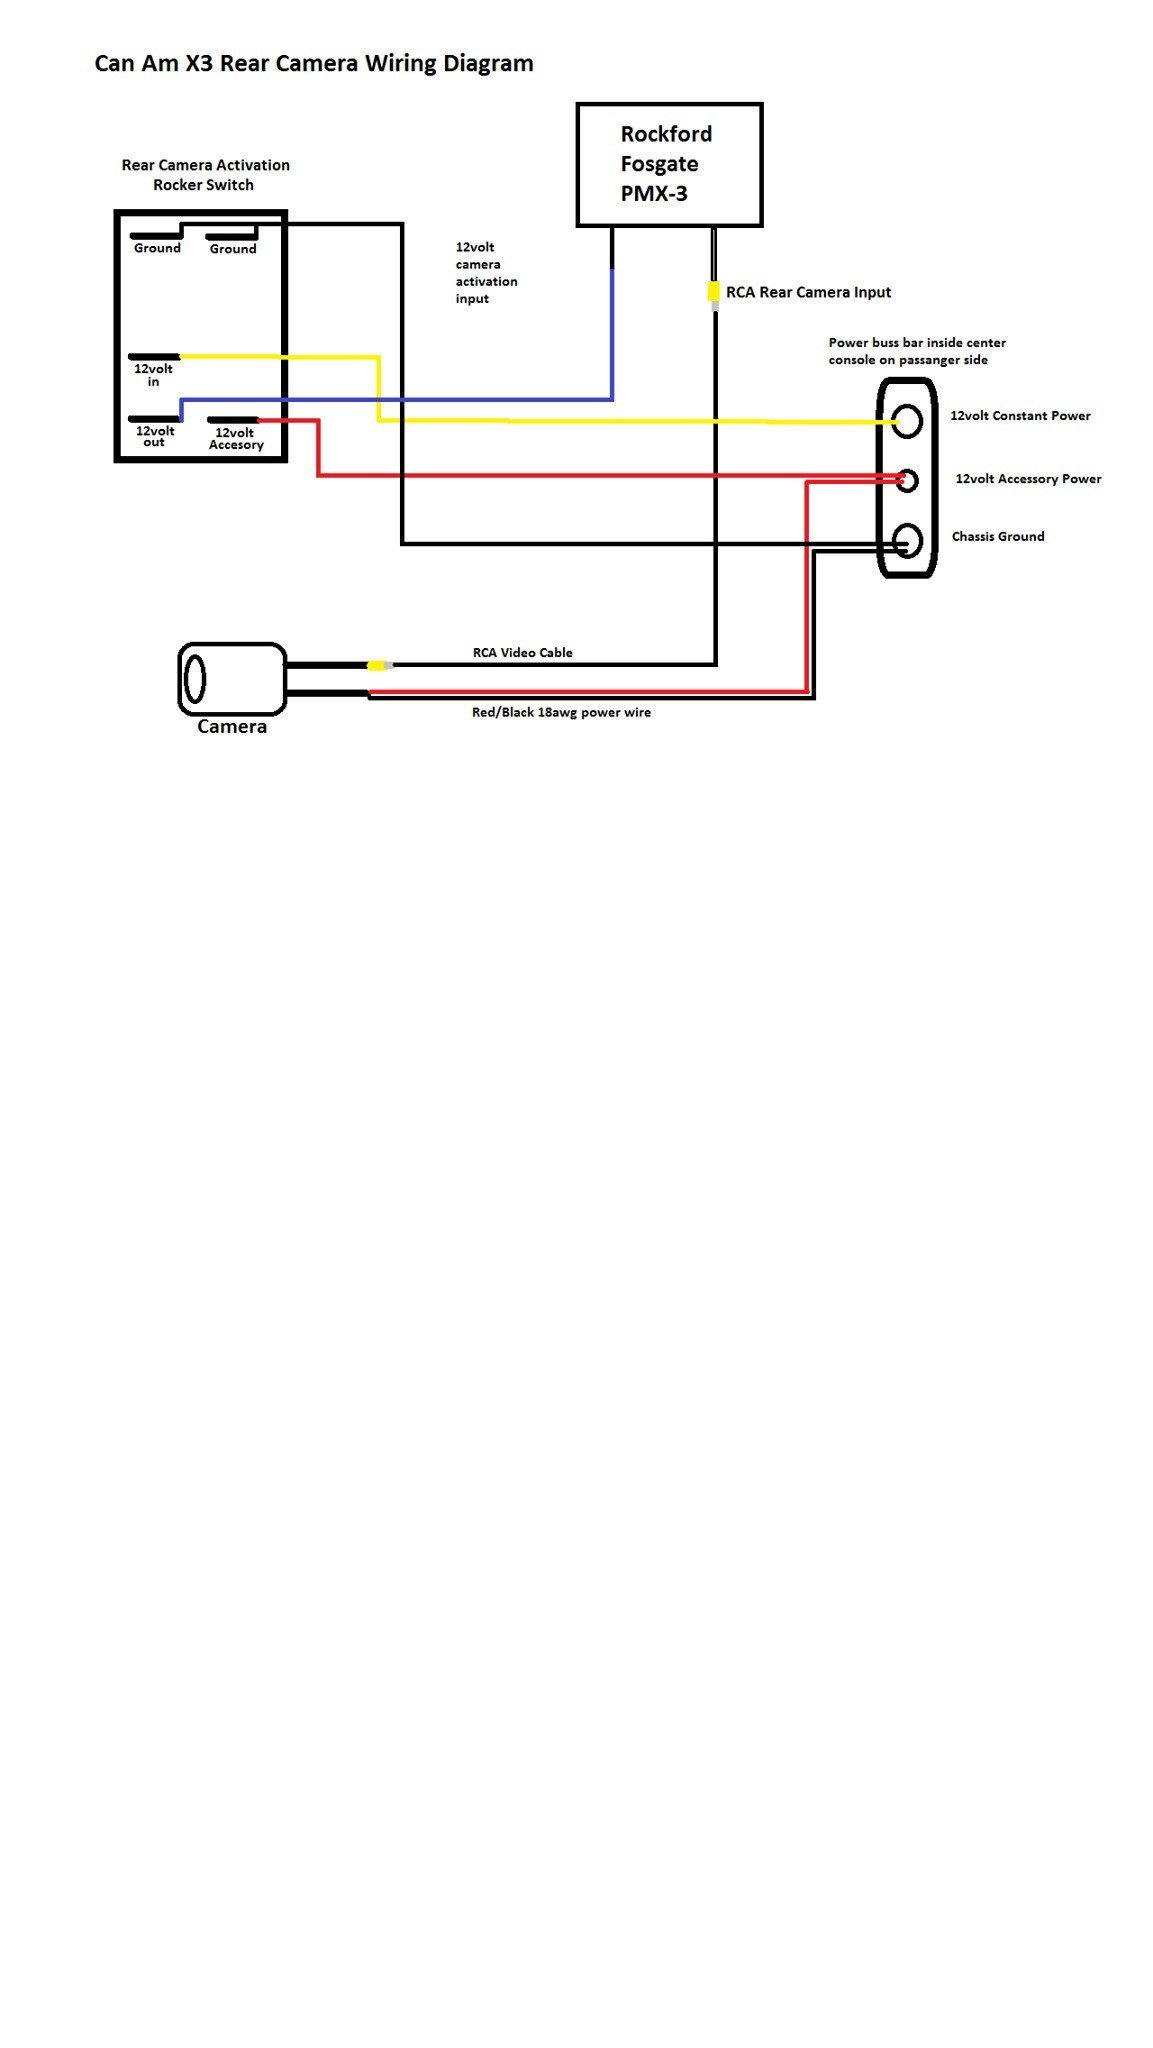 Can Am Ds 250 Wire Diagram - Home Telephone Wiring Schematic -  atv.yenpancane.jeanjaures37.fr | 2008 Can Am Ds 250 Wiring Diagram |  | Wiring Diagram Resource